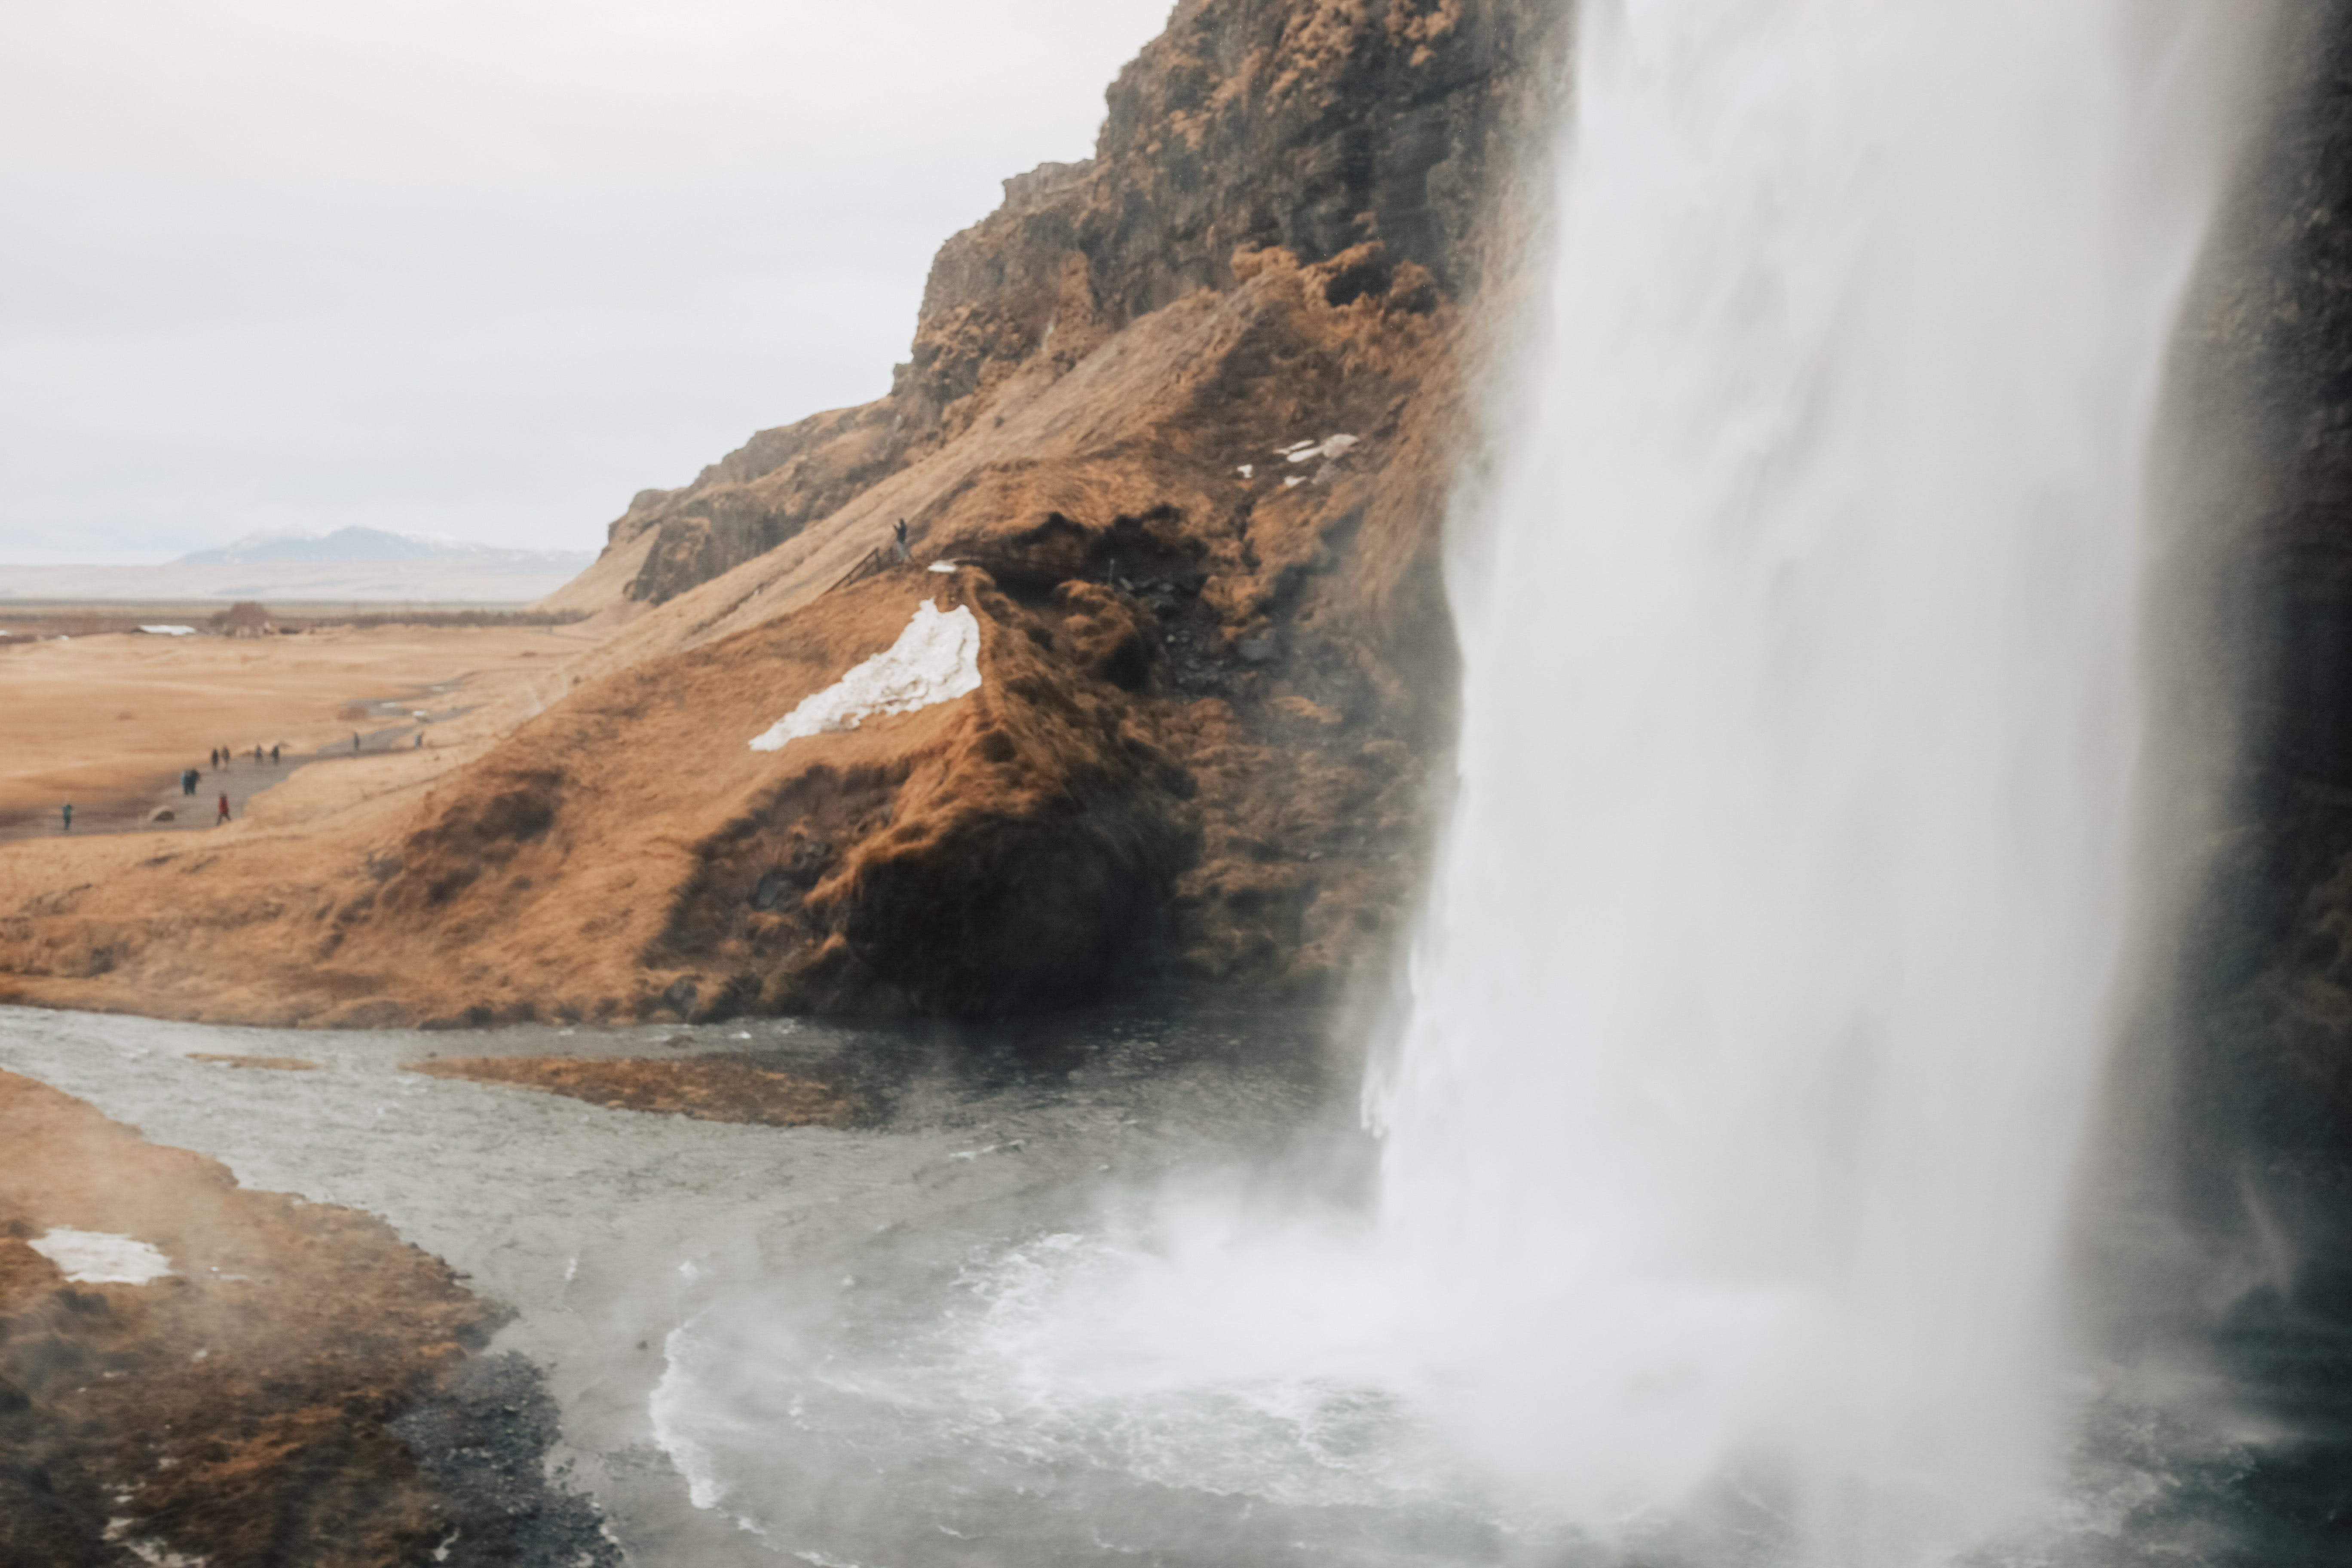 Water streaming from Seljalandfoss waterfall in South Iceland.